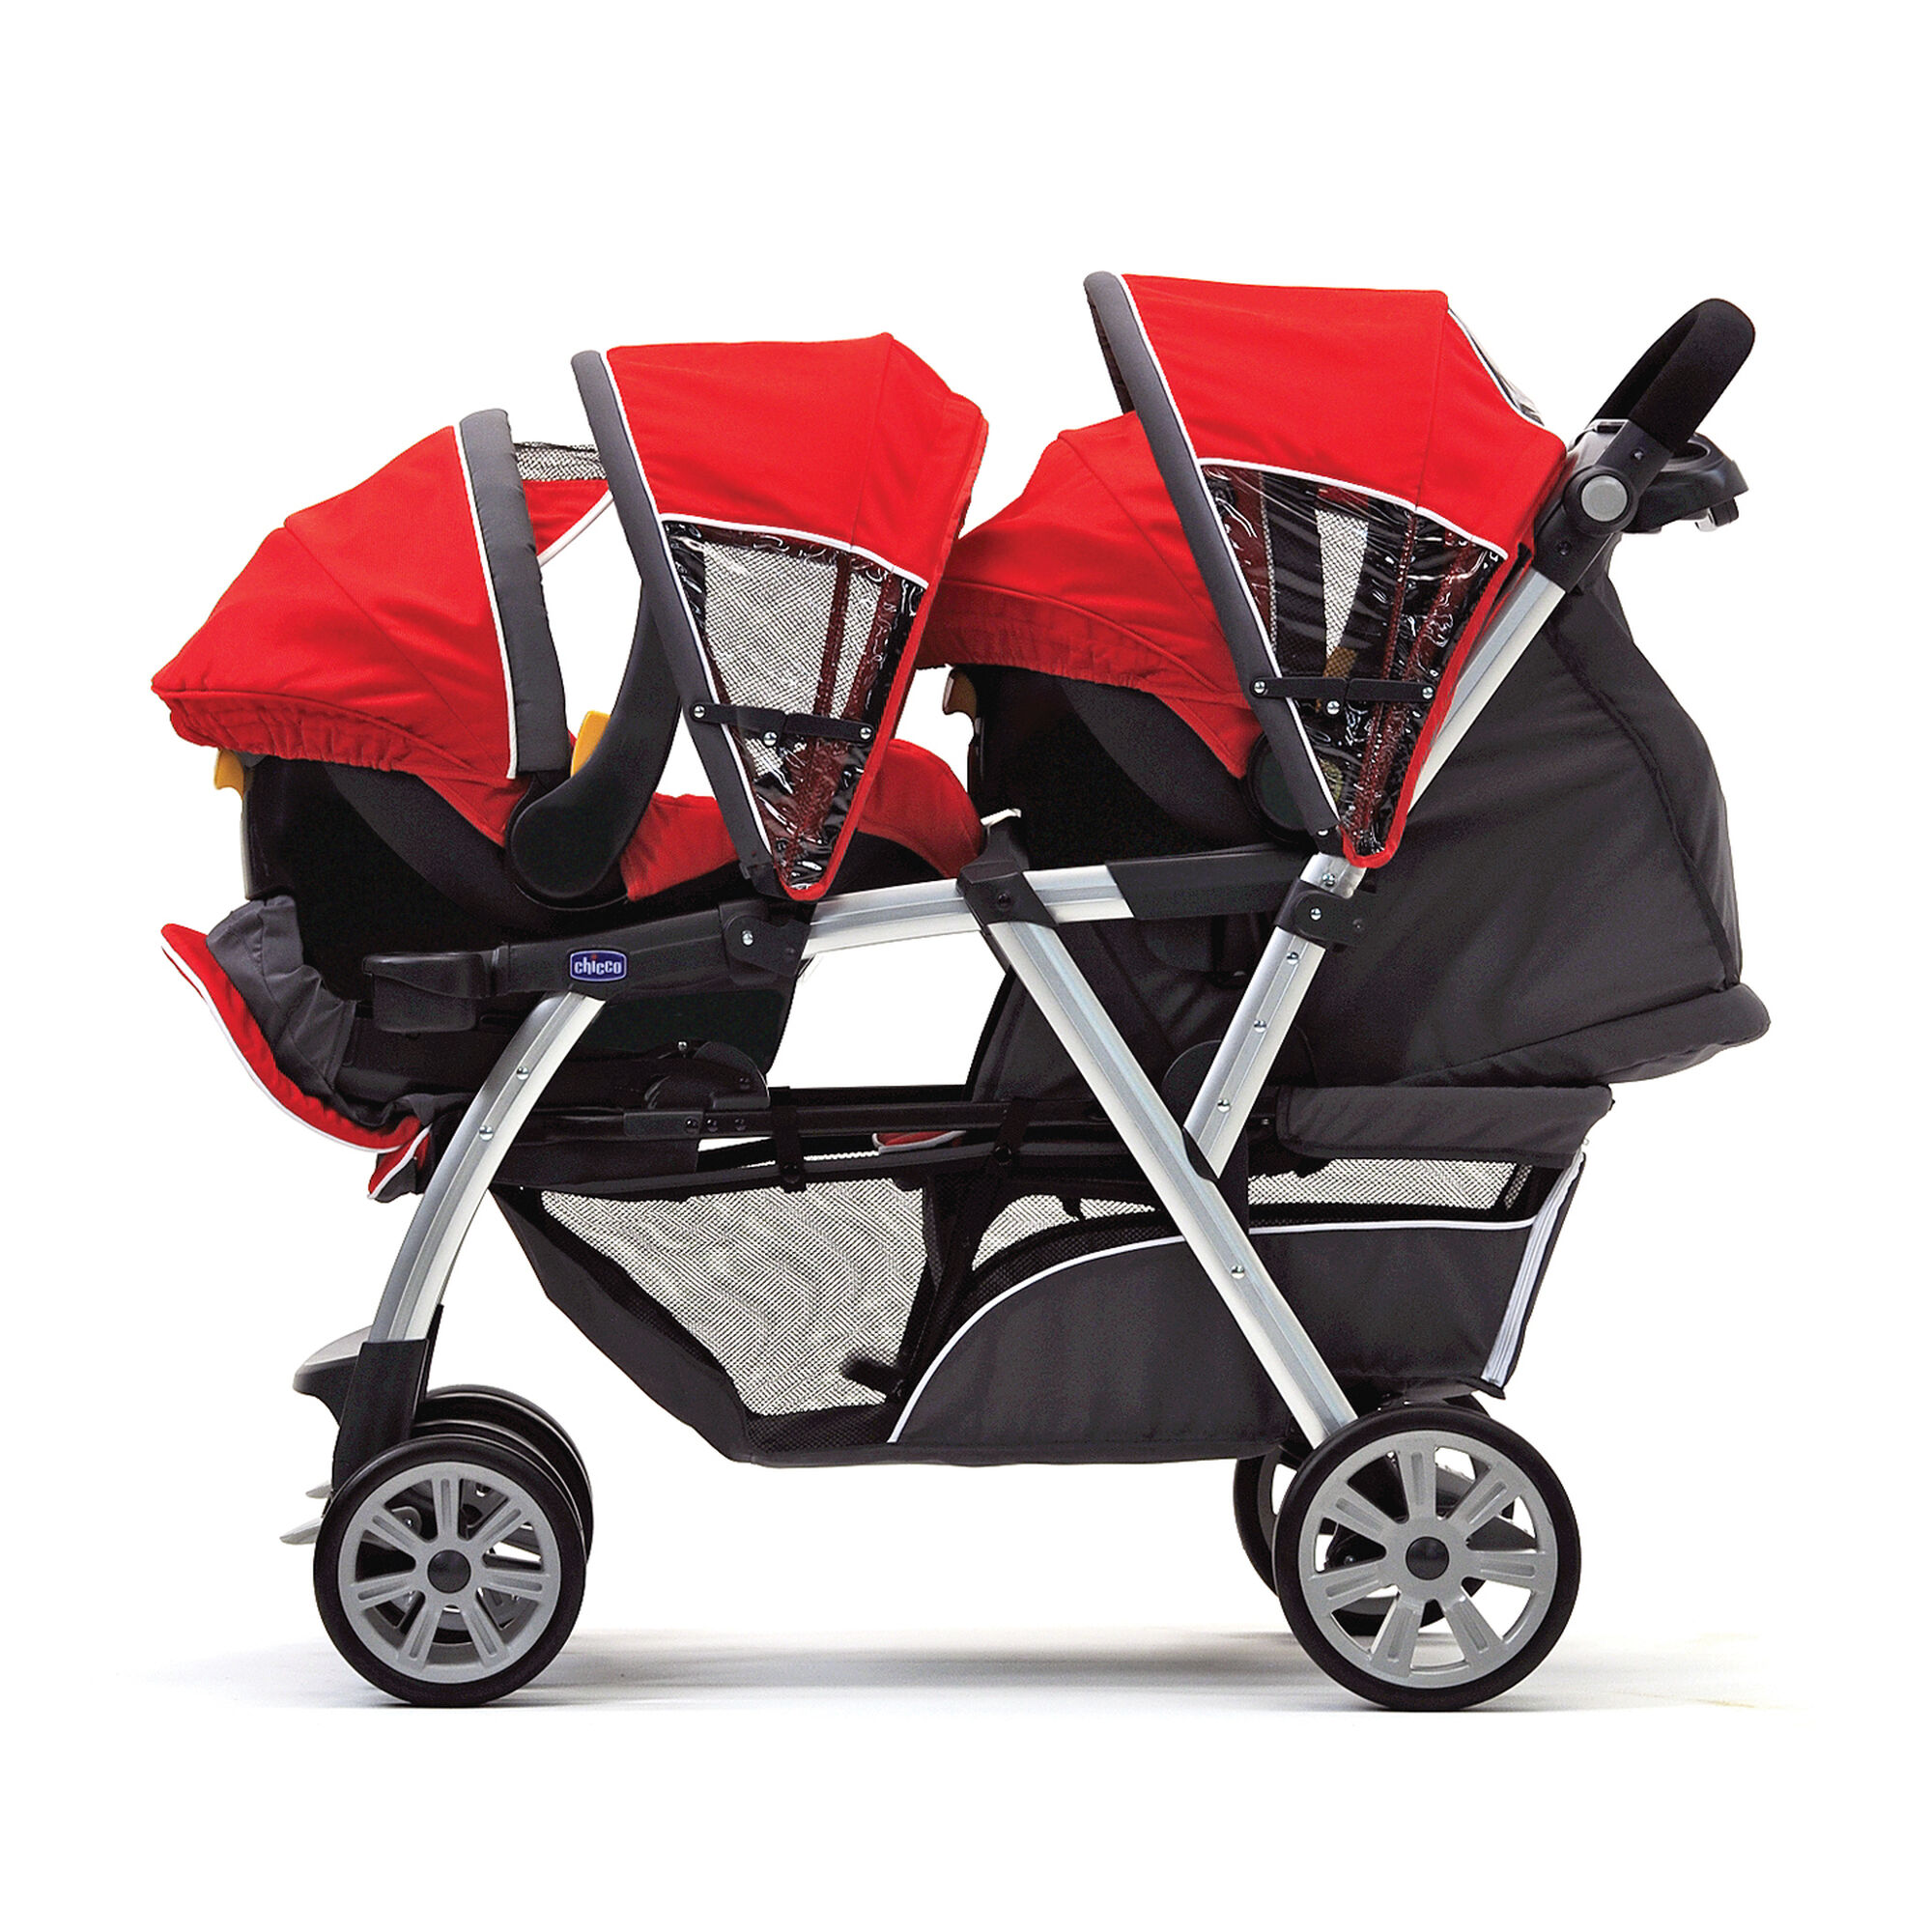 The Cortina To her double stroller accepts two KeyFit 30 Infant Car Seats to make traveling with